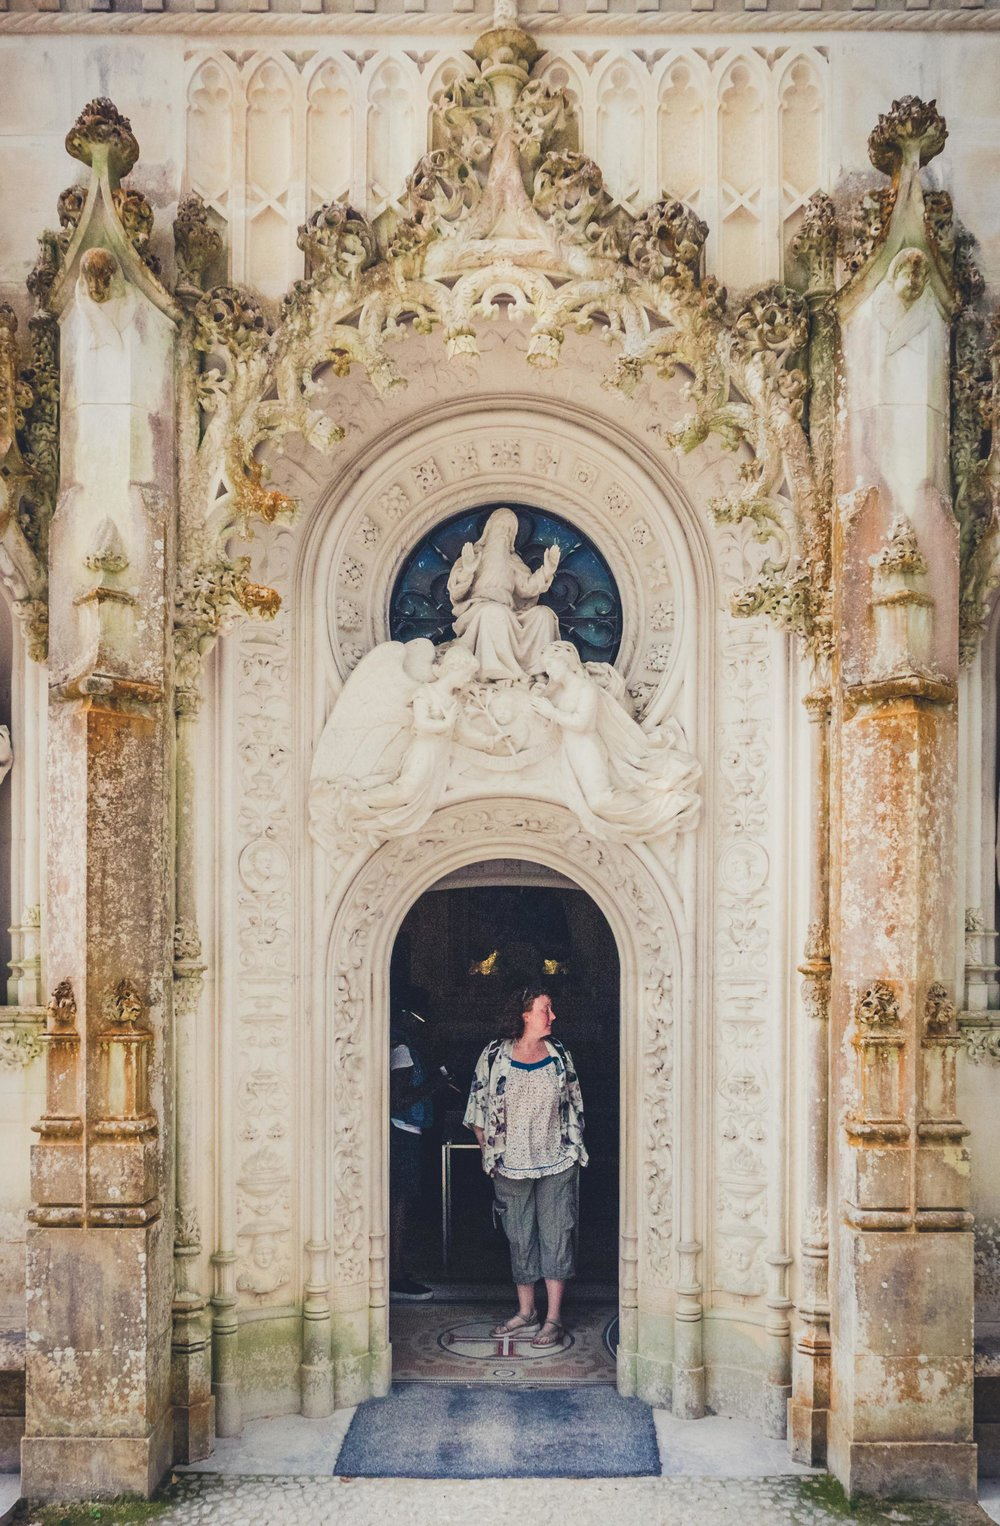 Portugal. Travel. Sintra. Sunshine. Hotel. History. view. room with a view. pena palace.  palace. town. old town. castle. castelo dos mouros. on the bridge. Quinta da Regaleira.jpg